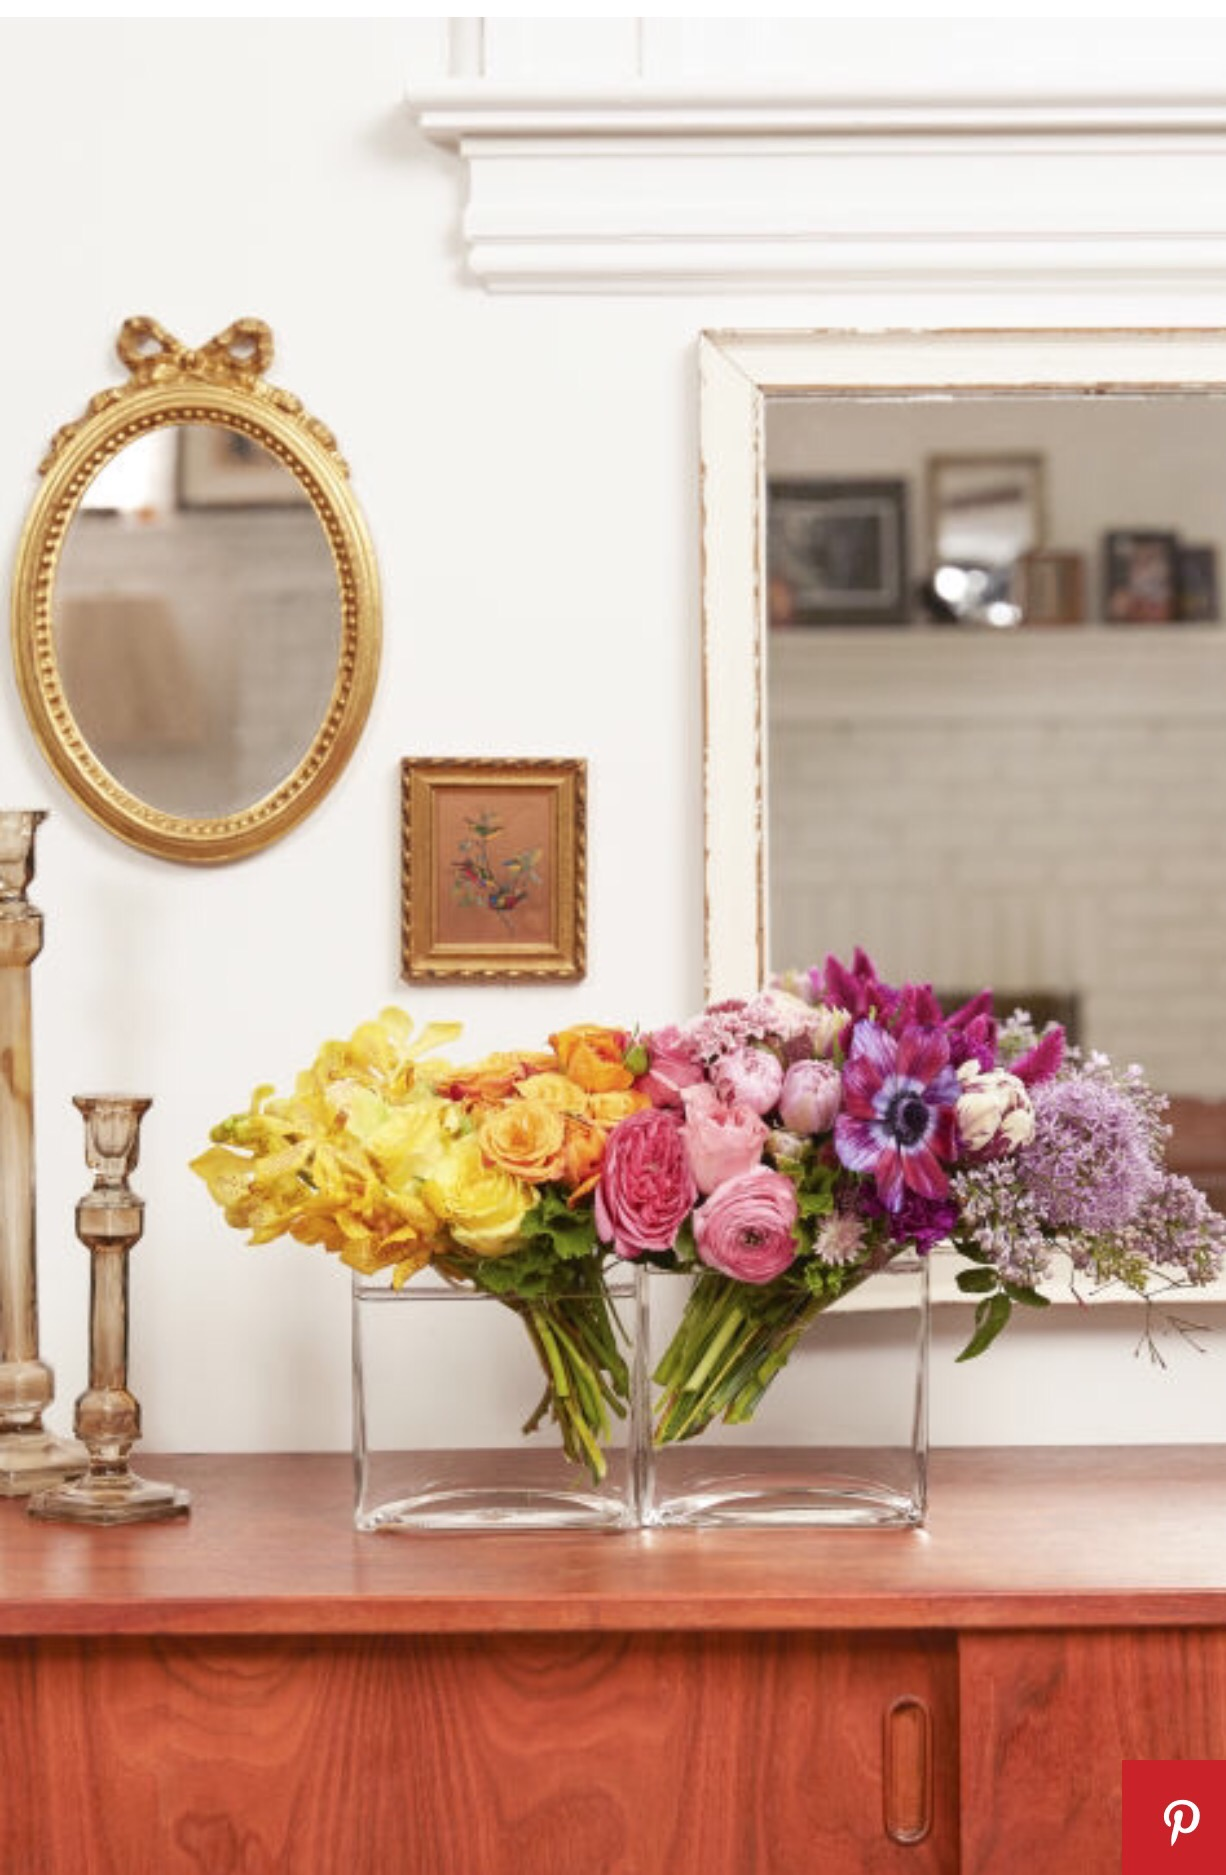 What are some tips for making your own flower arrangements?